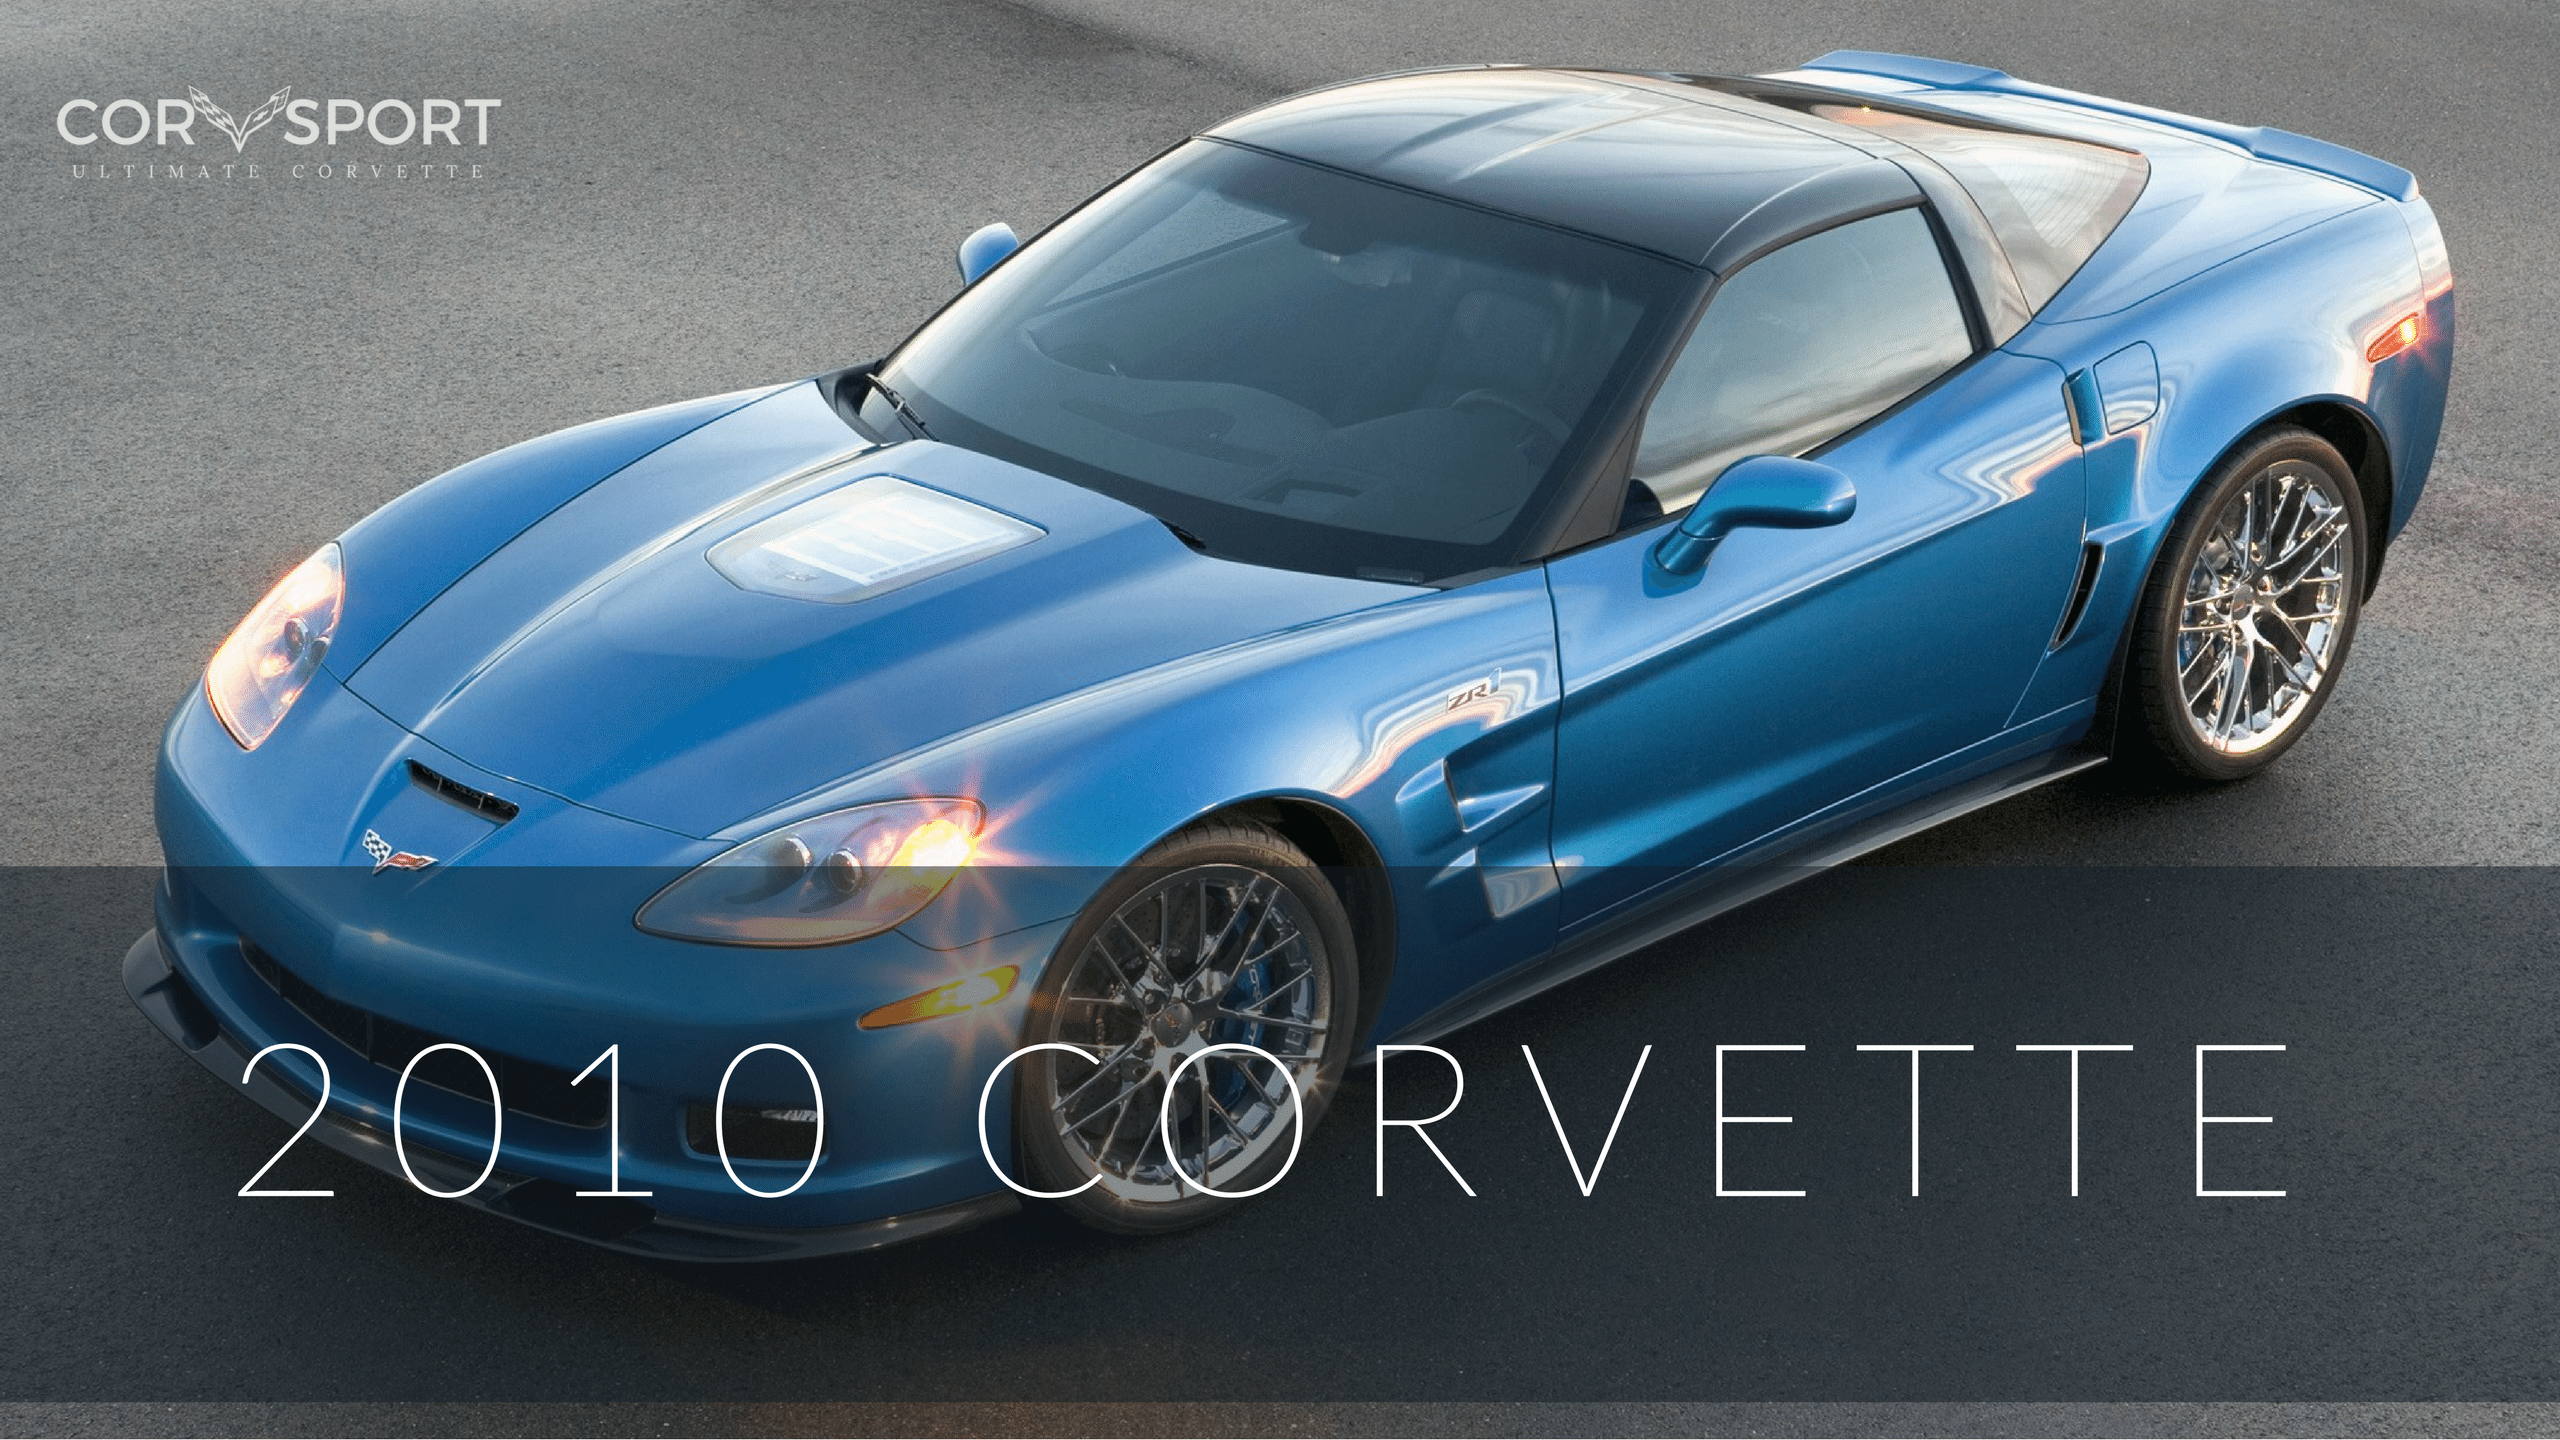 2010 C6 Corvette | Ultimate Guide (Overview, Specs, VIN Info